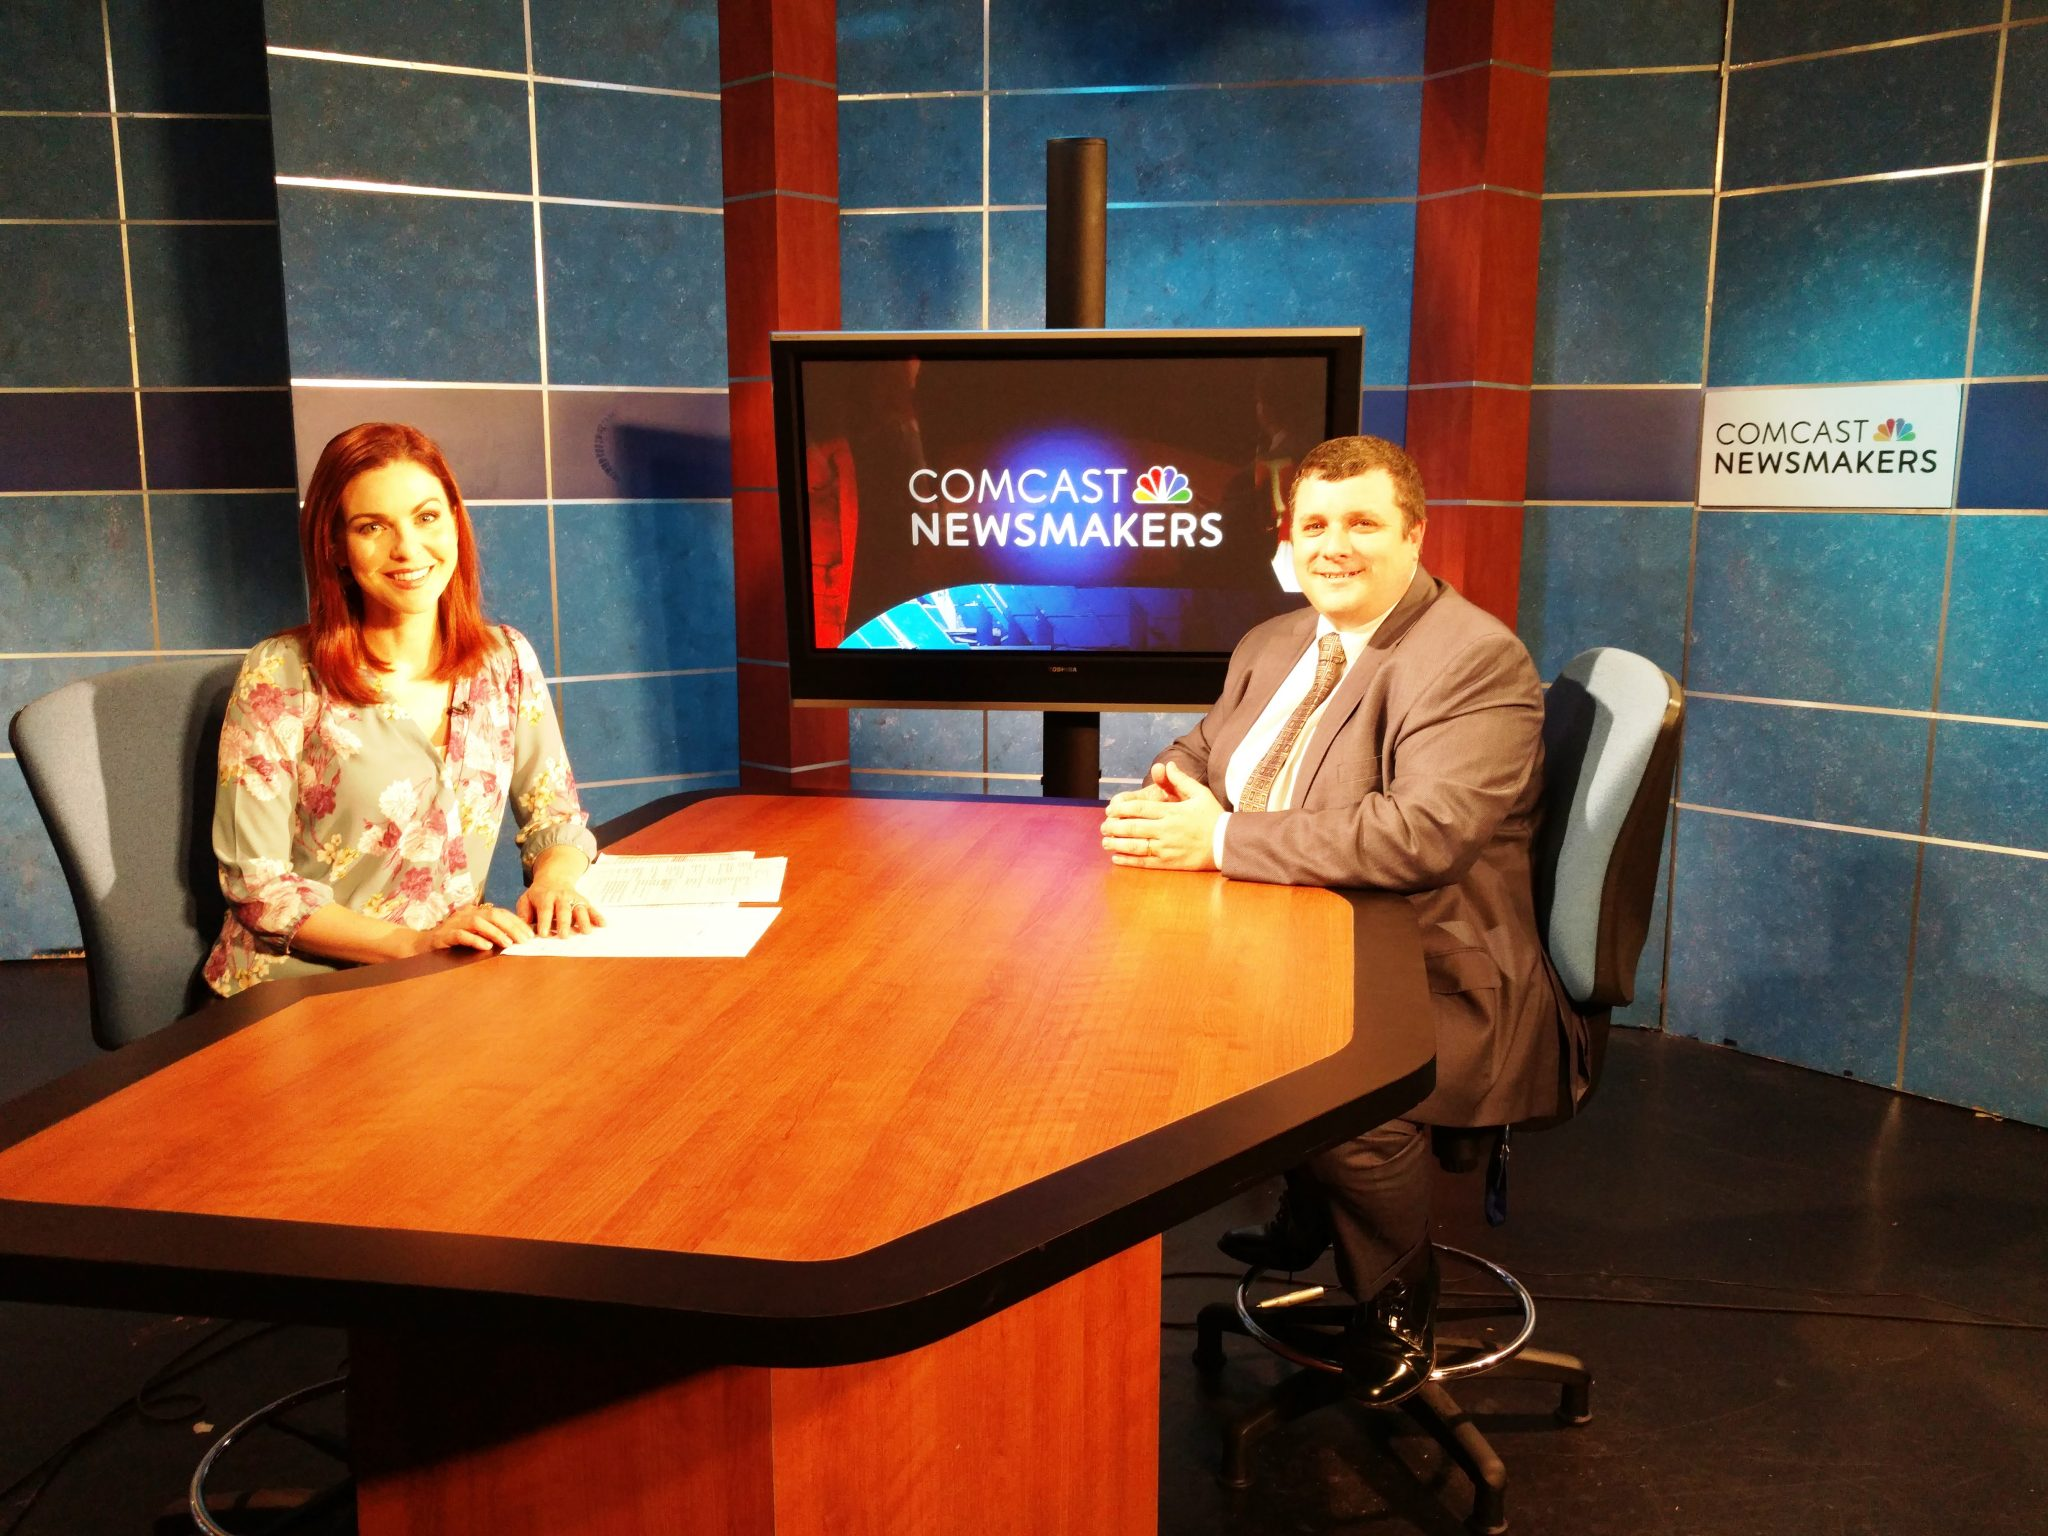 Comcast Newsmakers 2